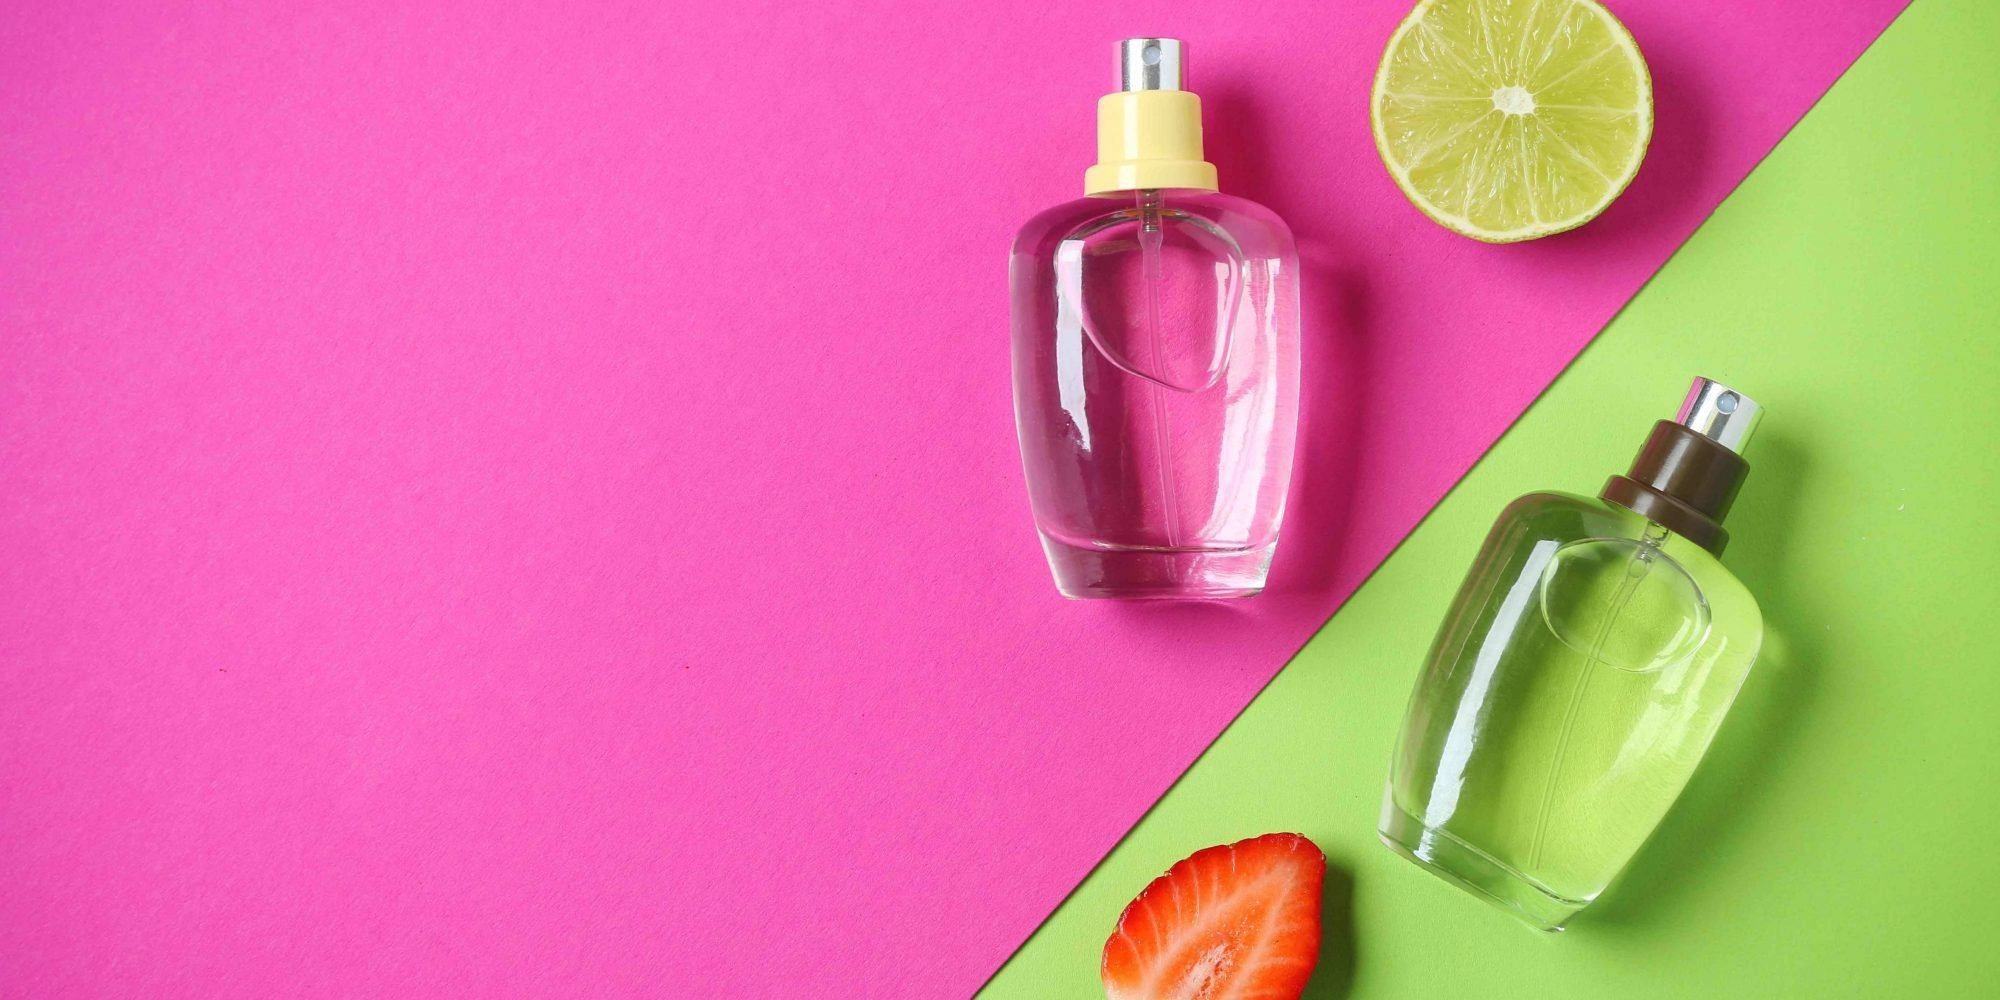 Do Indie Beauty Brand Founders Fear Being Ripped Off?